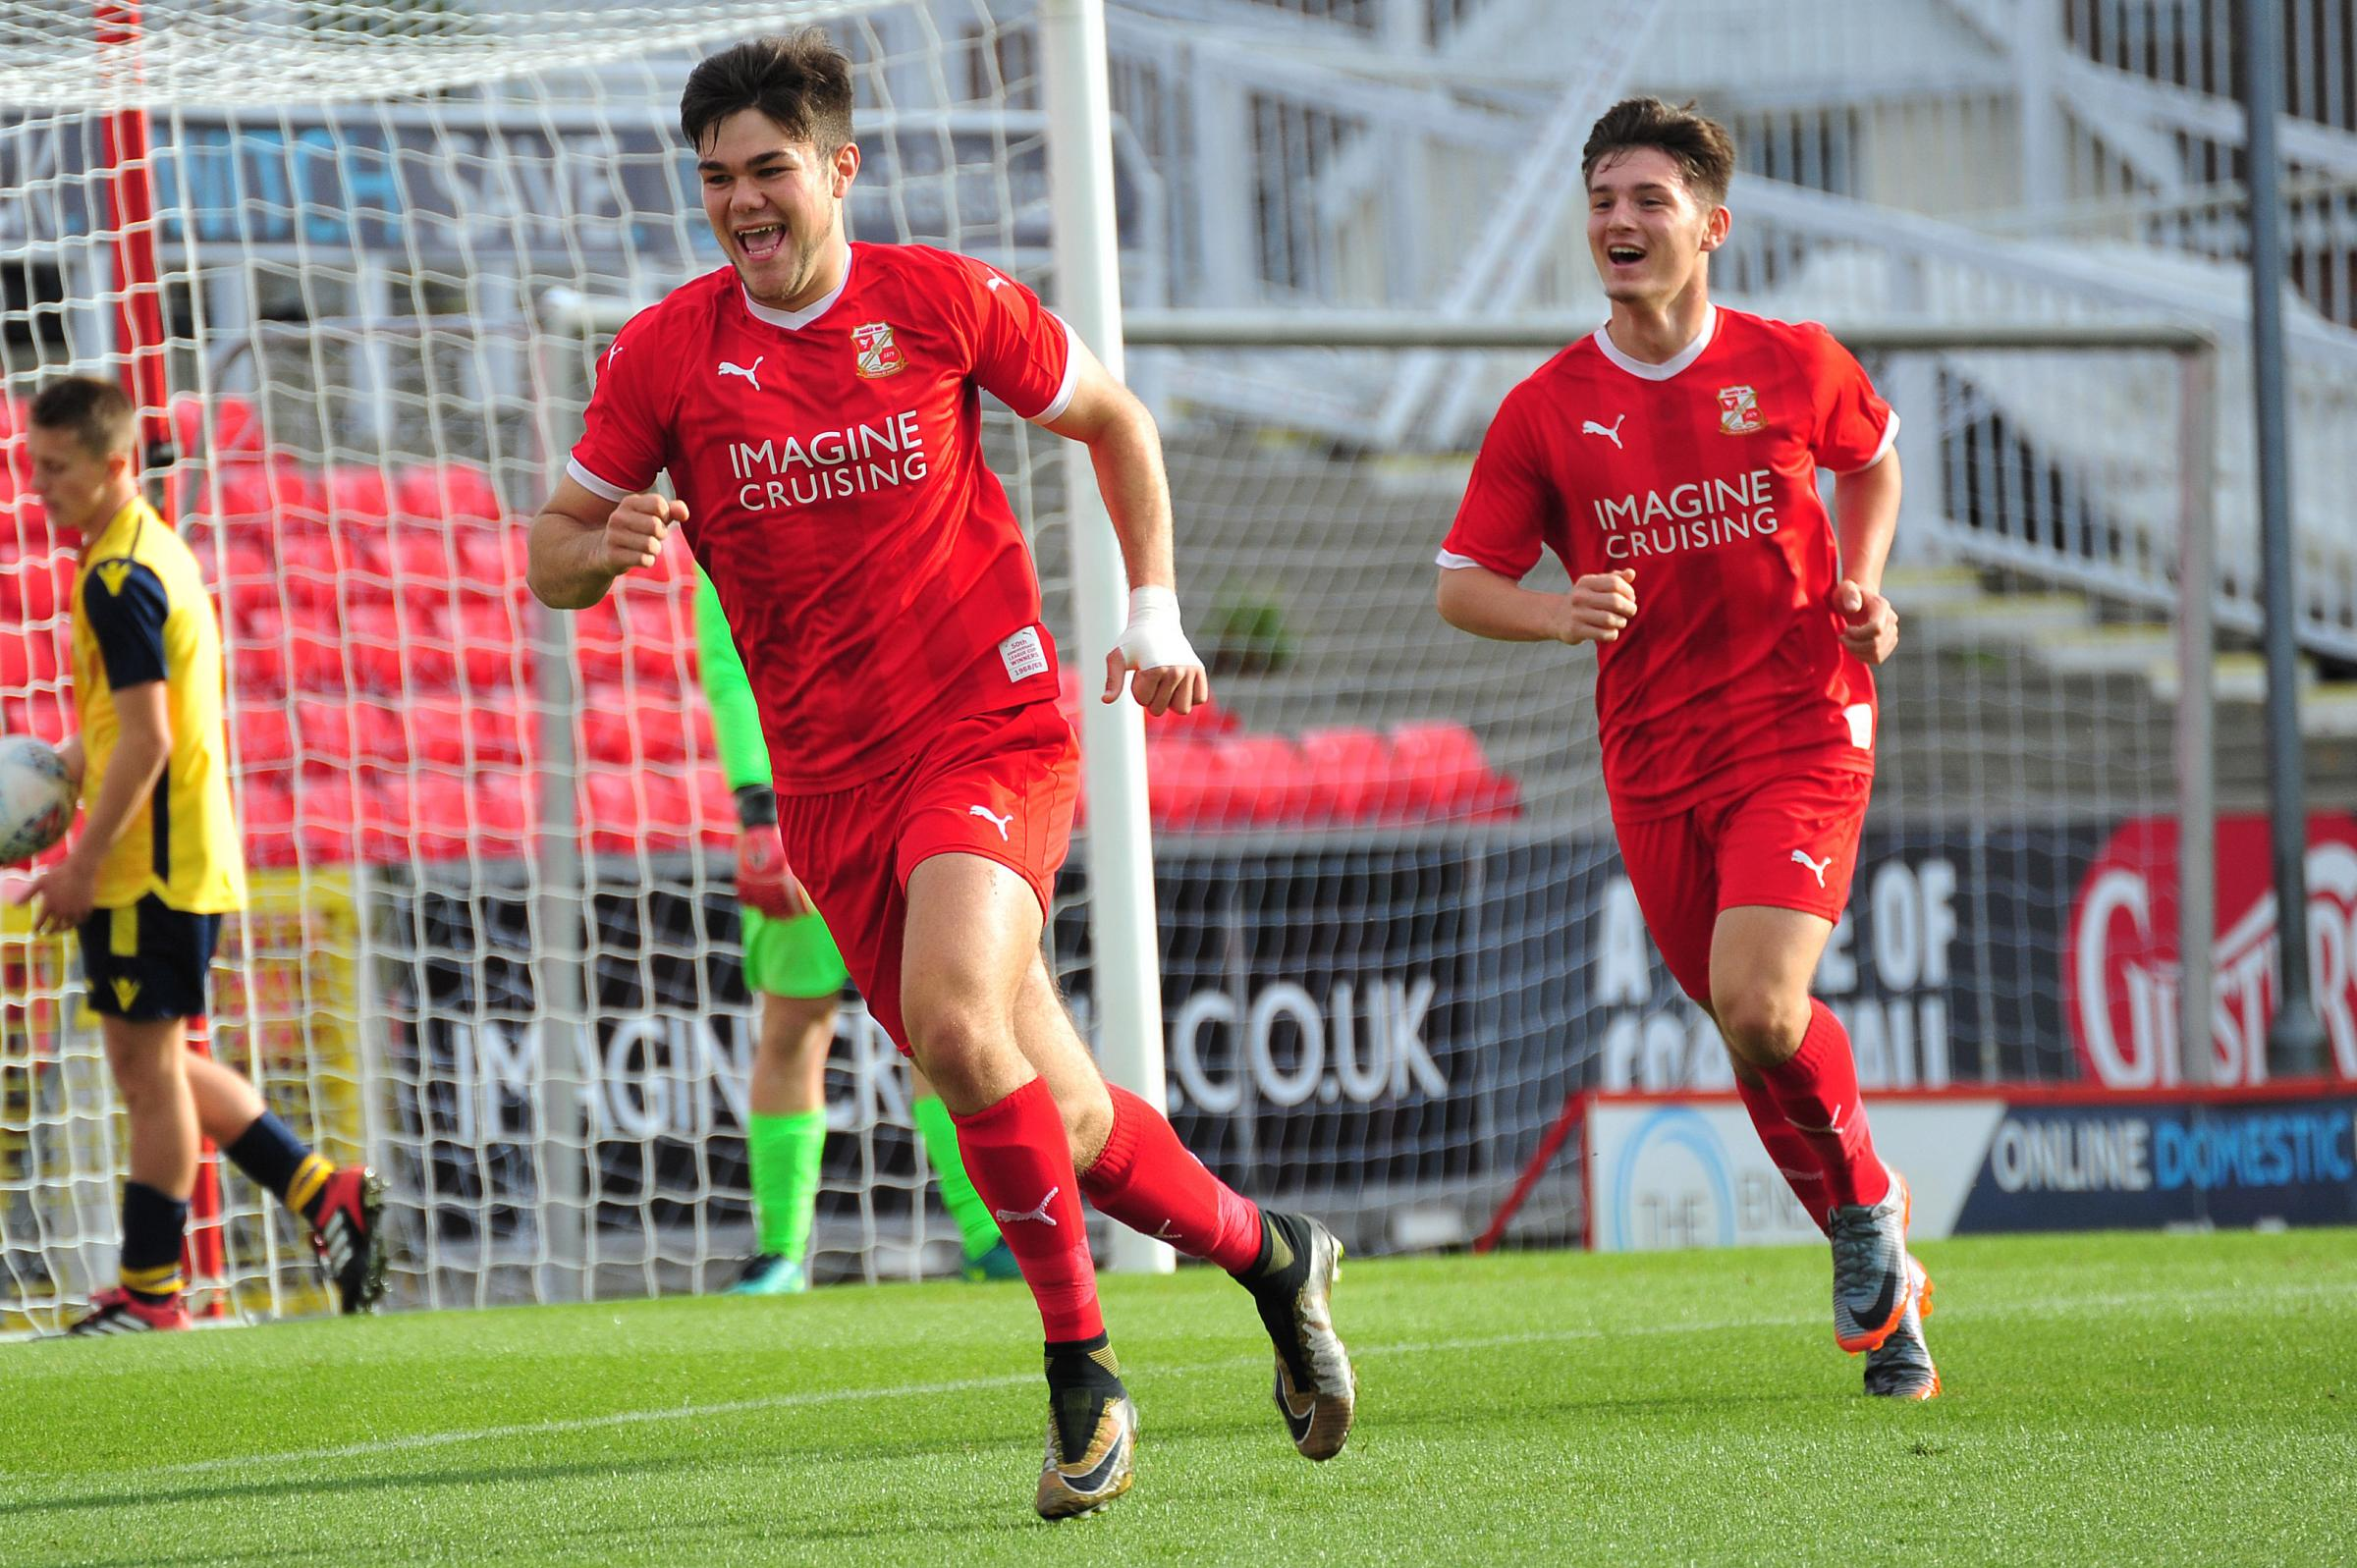 Action from Swindon Town U18s FA Youth Cup win over Moneyfields. PICTURE: SHAUN REYNOLDS - Teoman Atik celebrates scoring Swindon's first goal